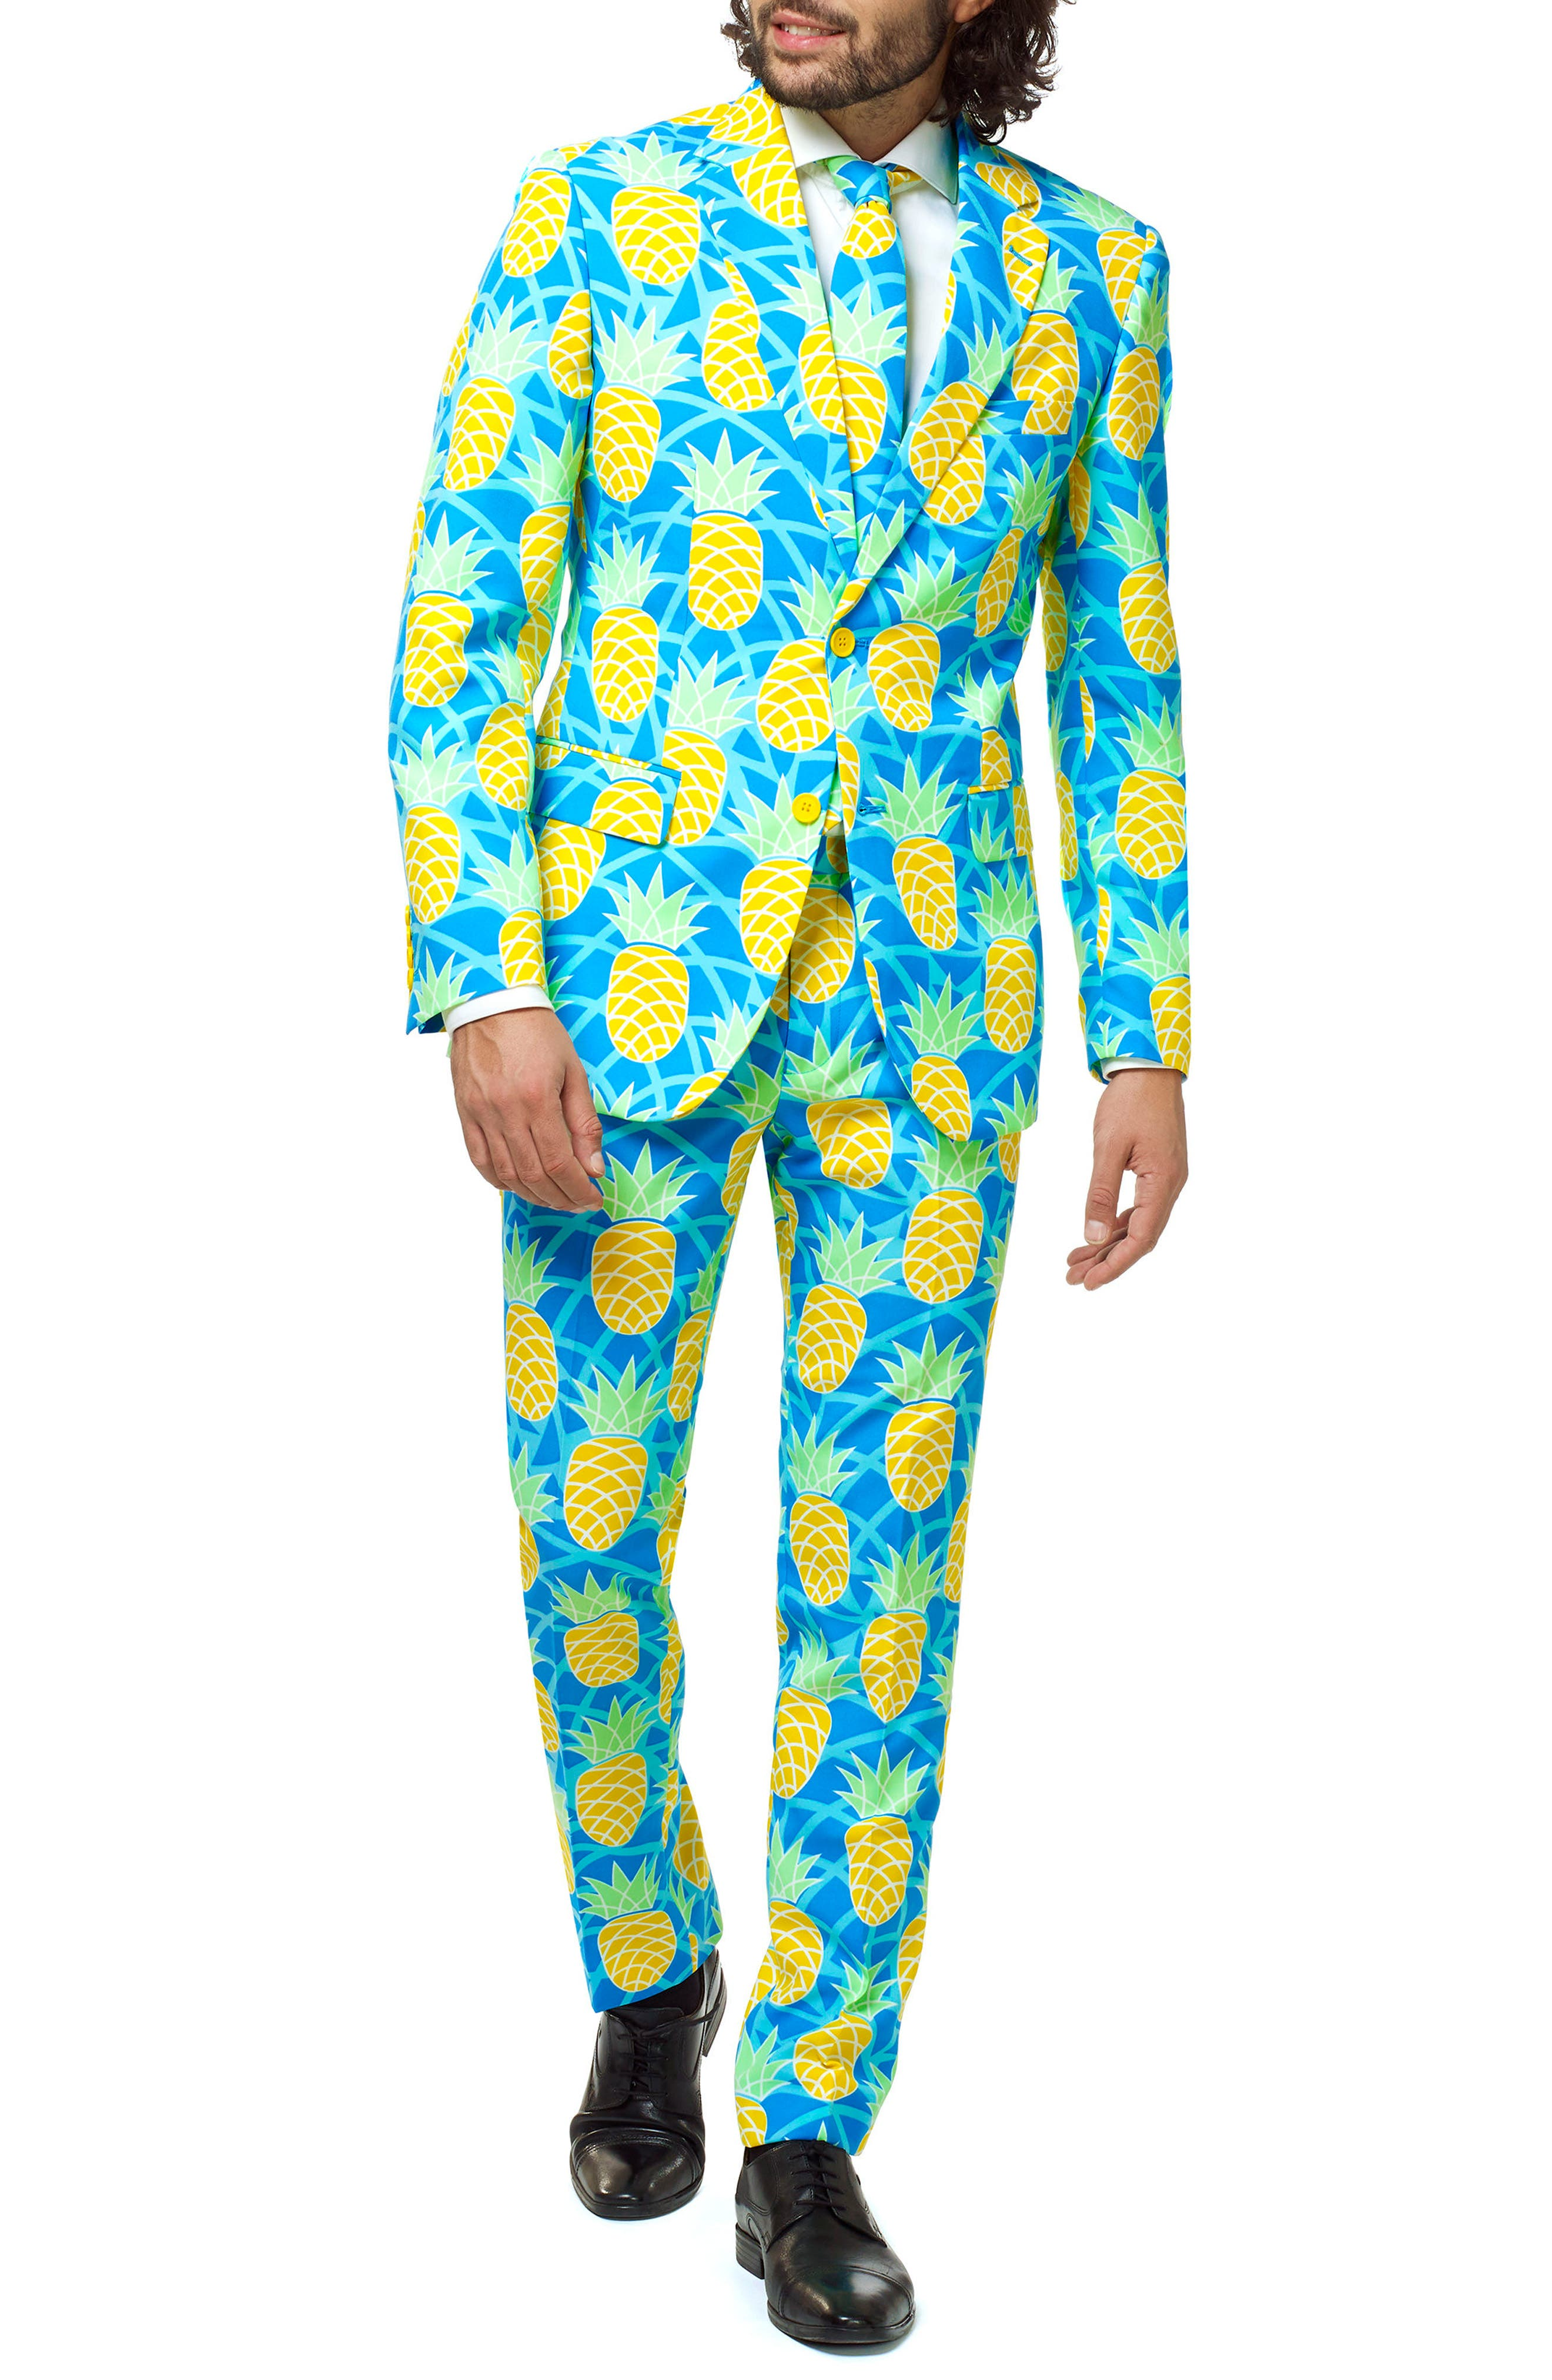 Summer Shineapple Trim Fit Two-Piece Suit with Tie,                         Main,                         color, 400